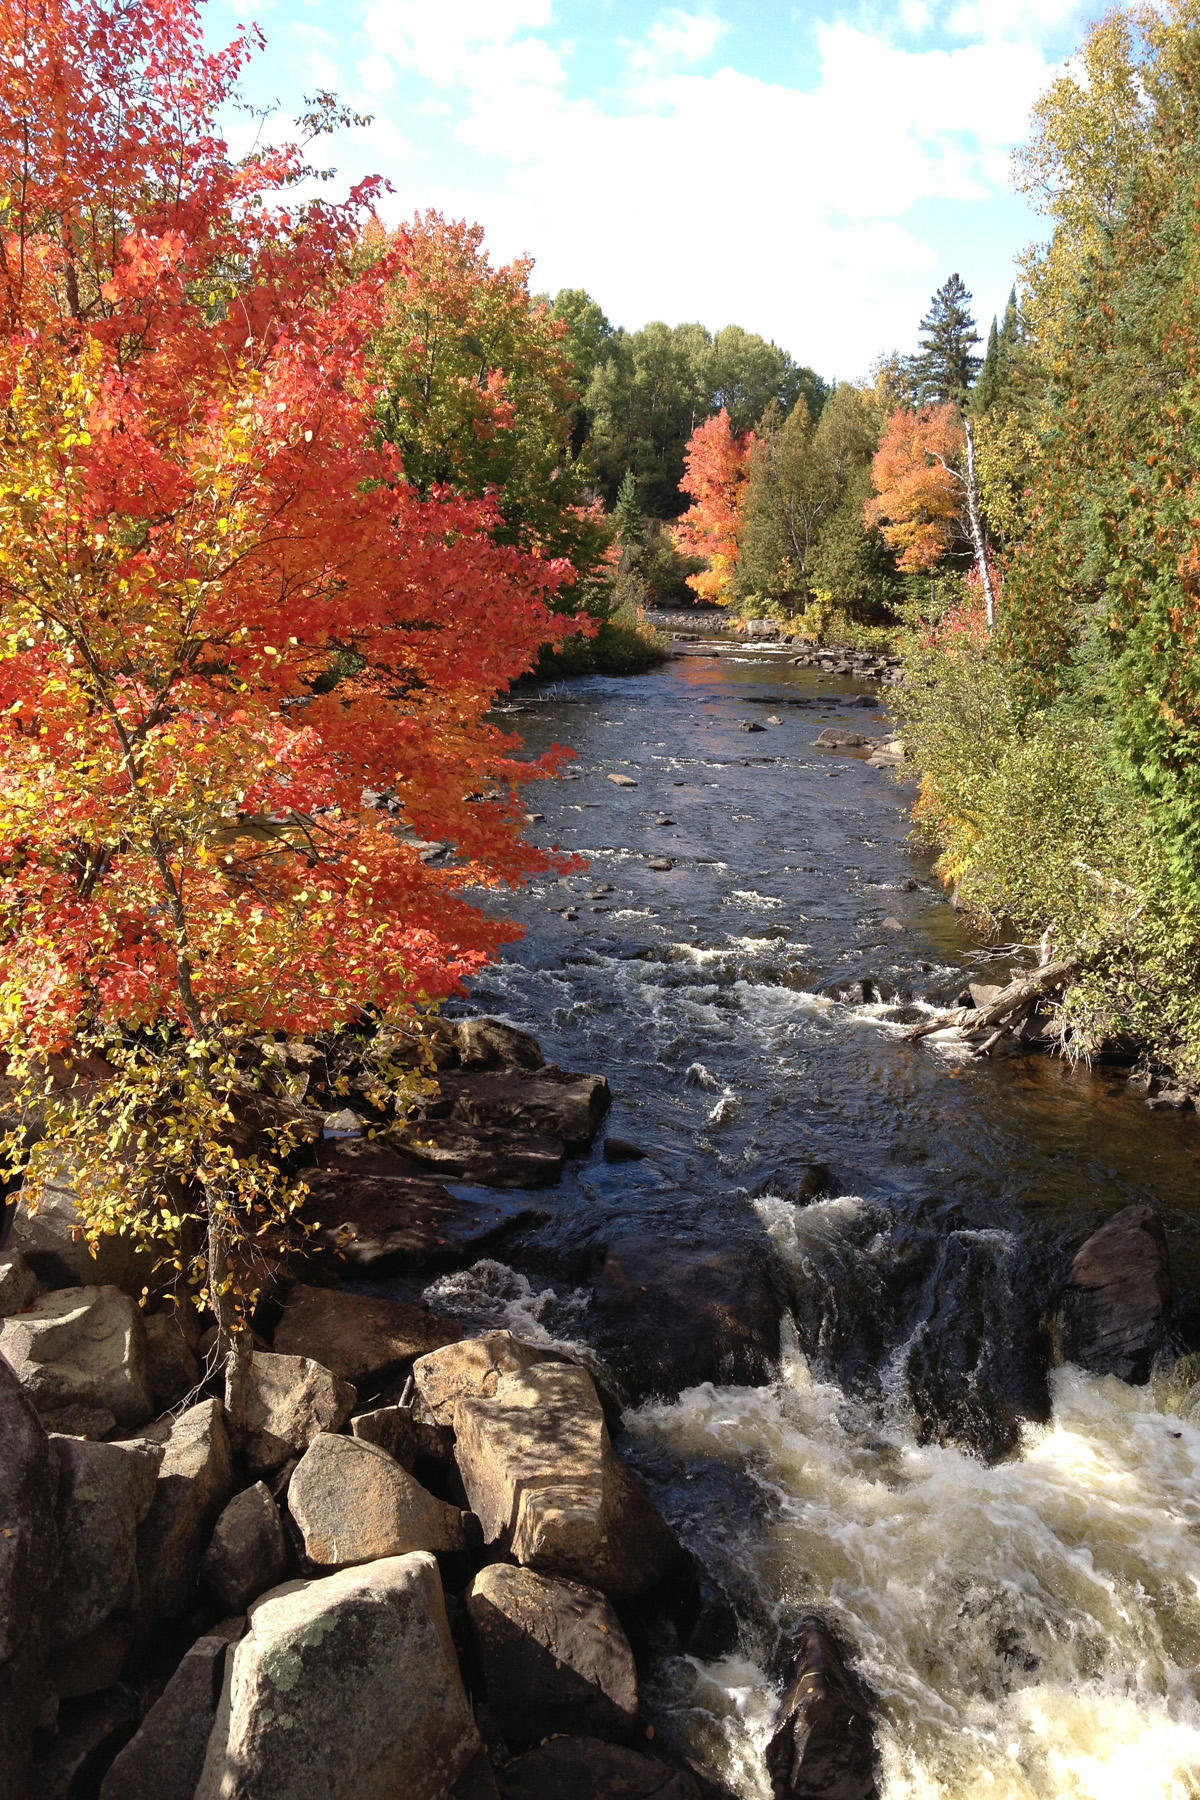 Thompson Rapids